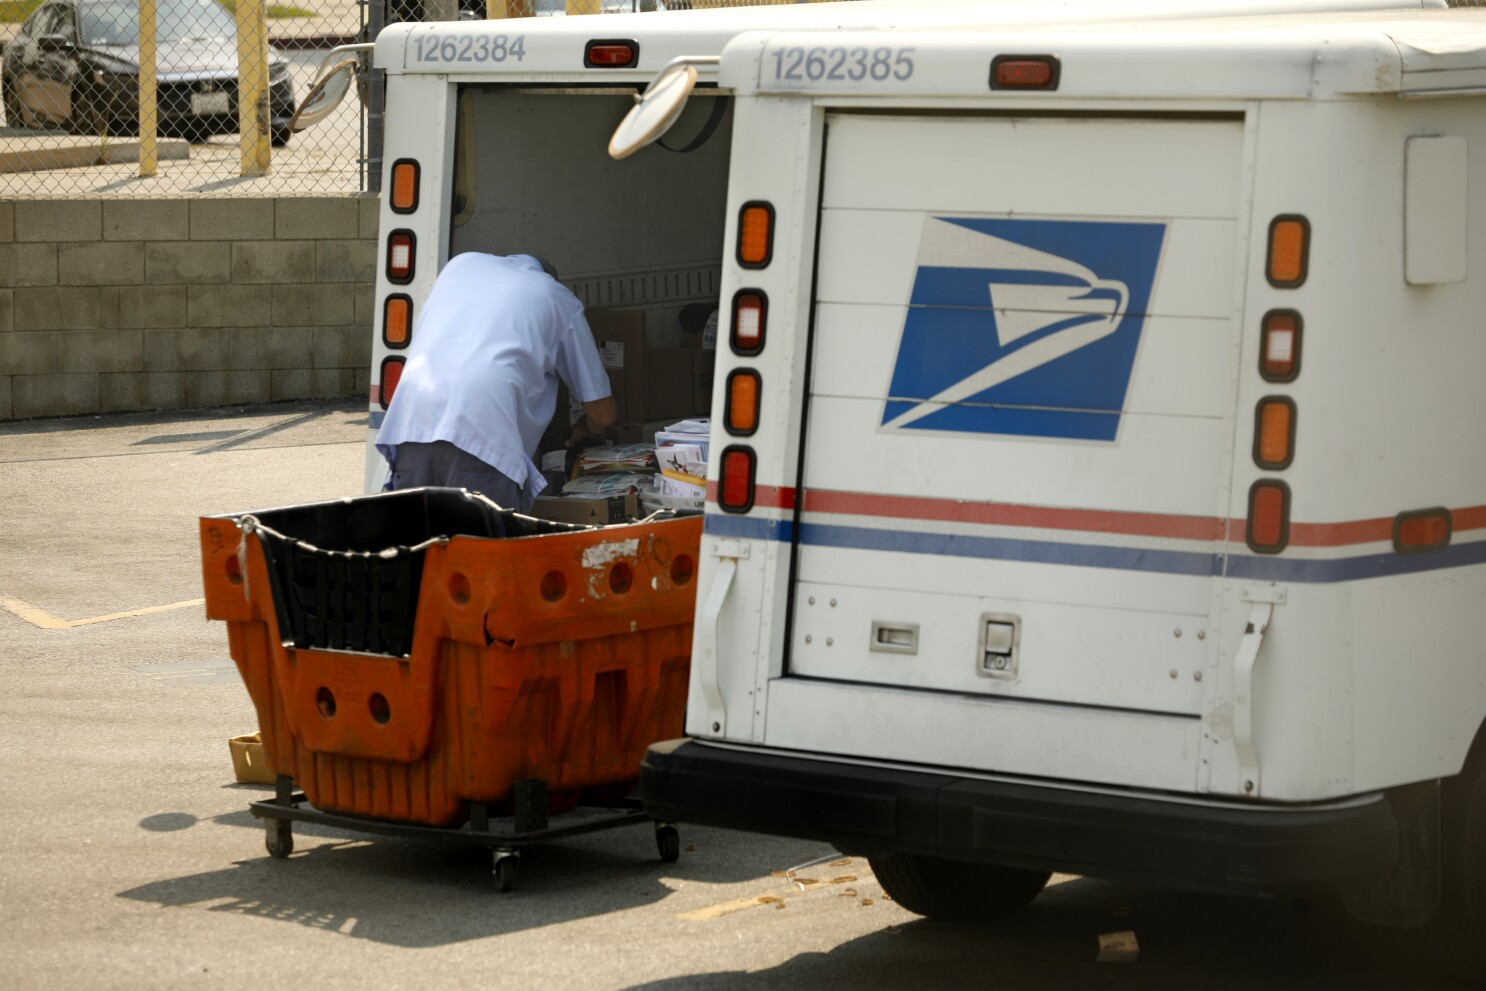 Usps Mail Dumped At Two Separate Locations In Glendale Los Angeles Times